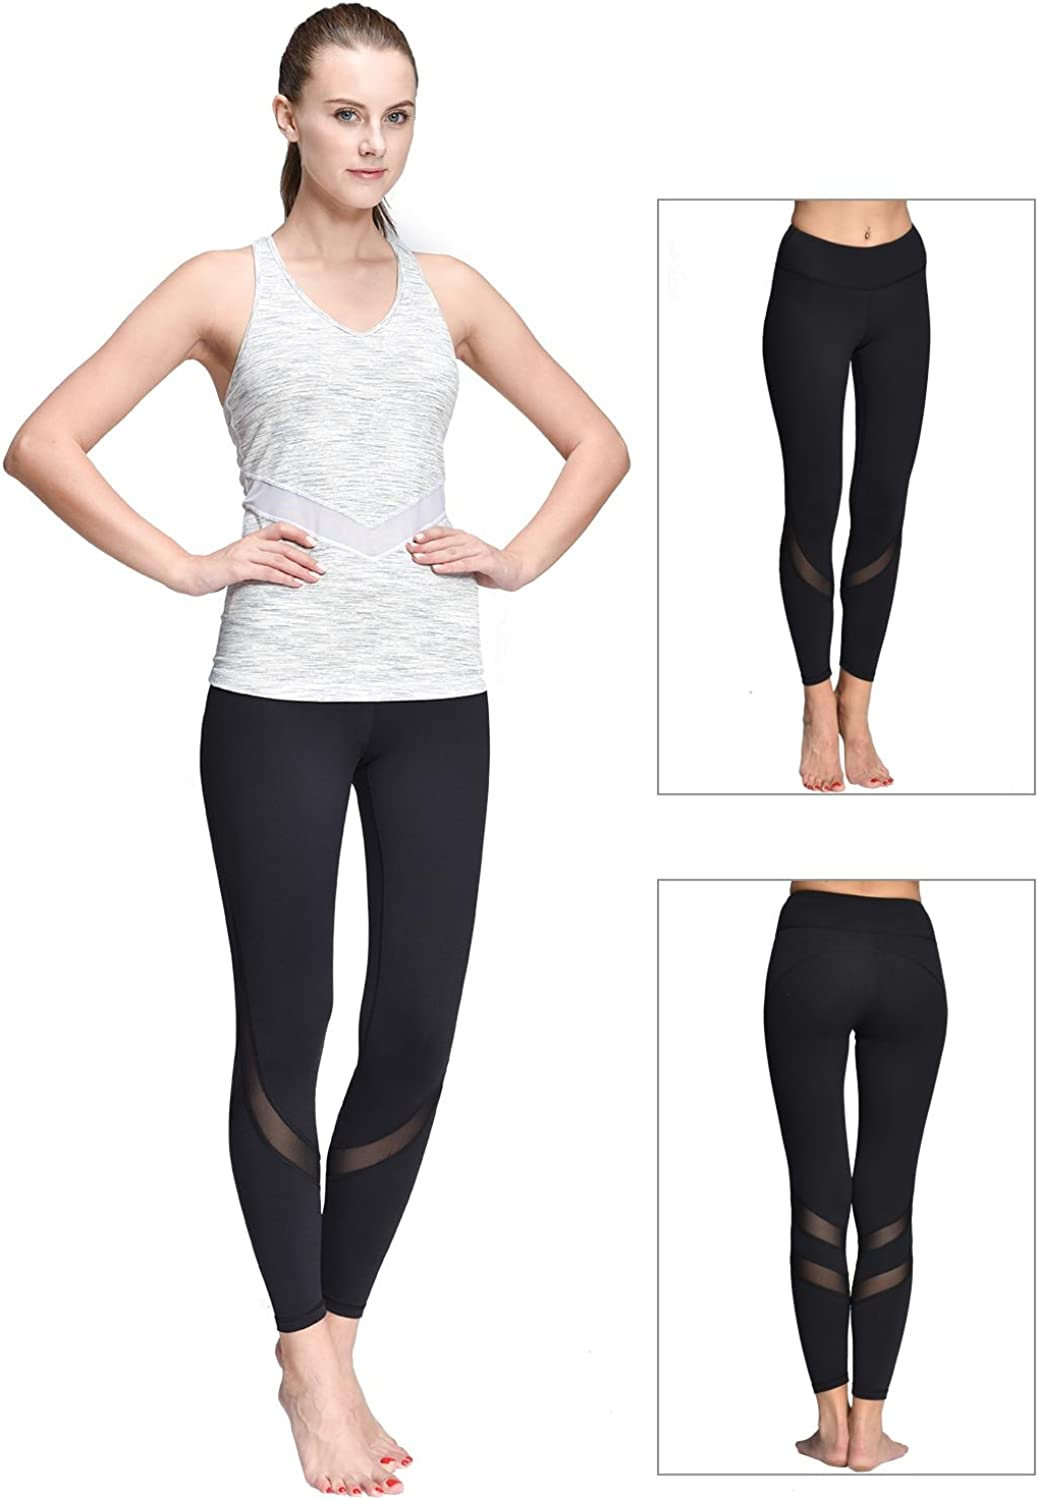 ONGASOFT Womens Yoga Pants Mesh Workout Leggings with Inner Pocket Yoga Tights